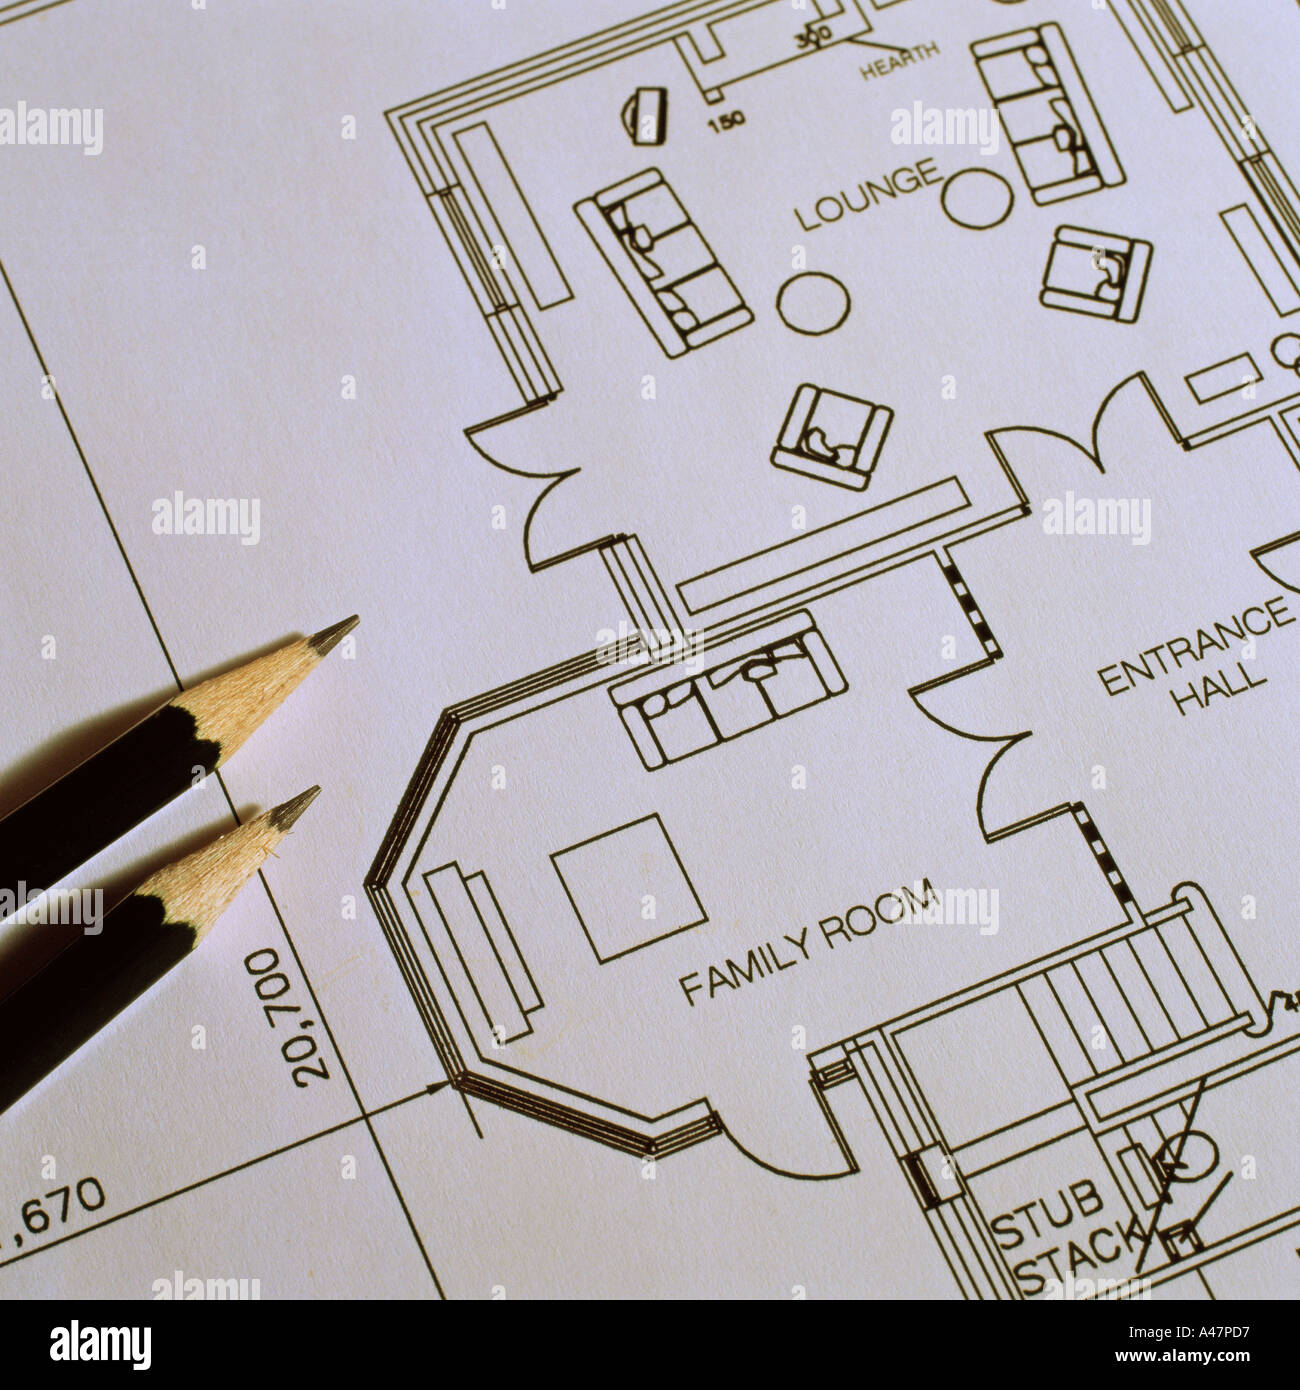 Pencils and architectural blueprints - Stock Image